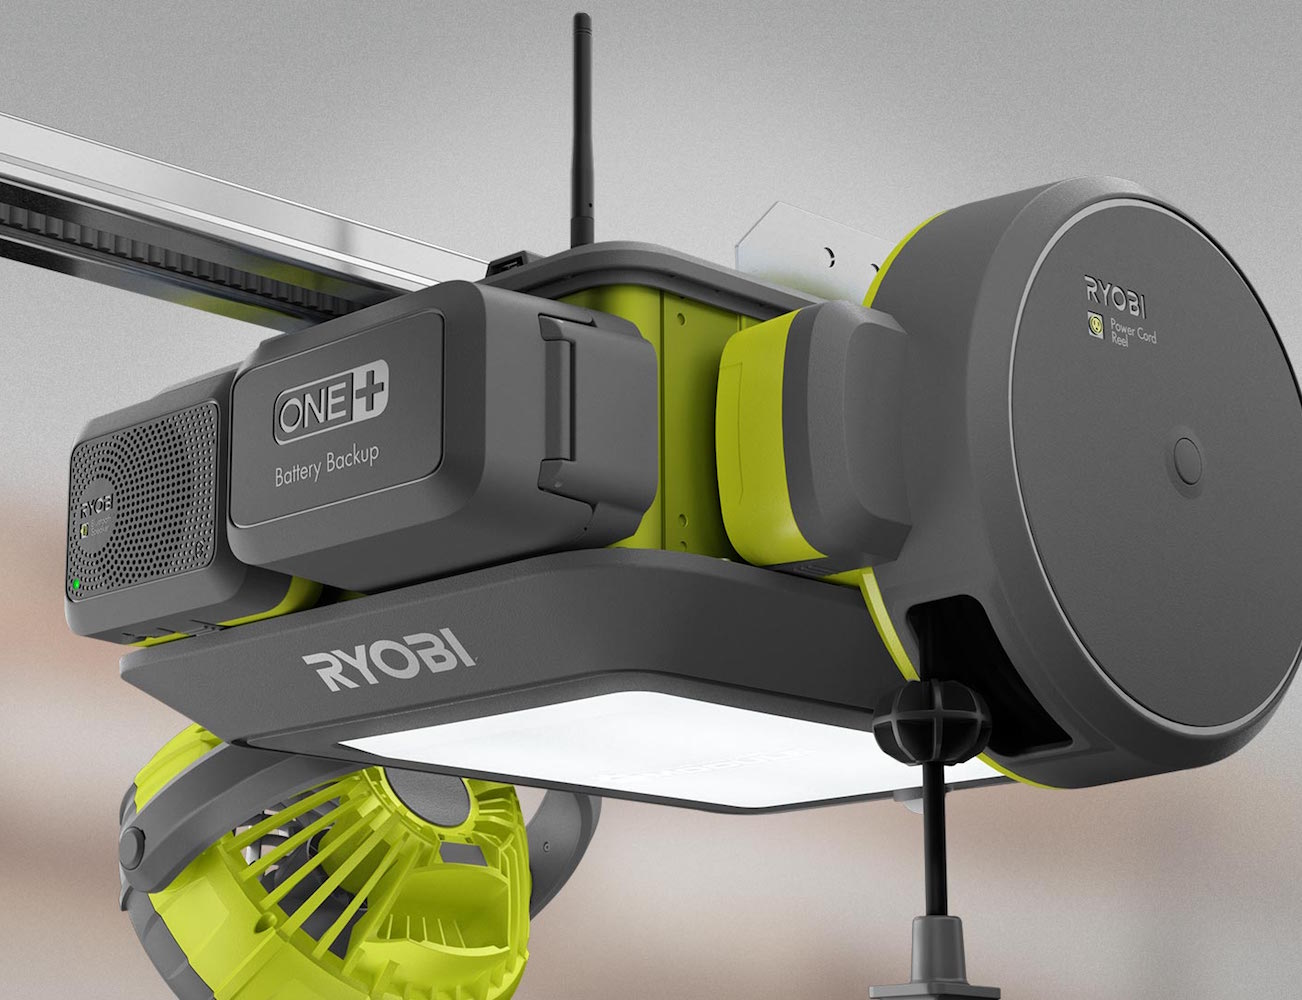 RYOBI Ultra Quiet Garage Door Opener